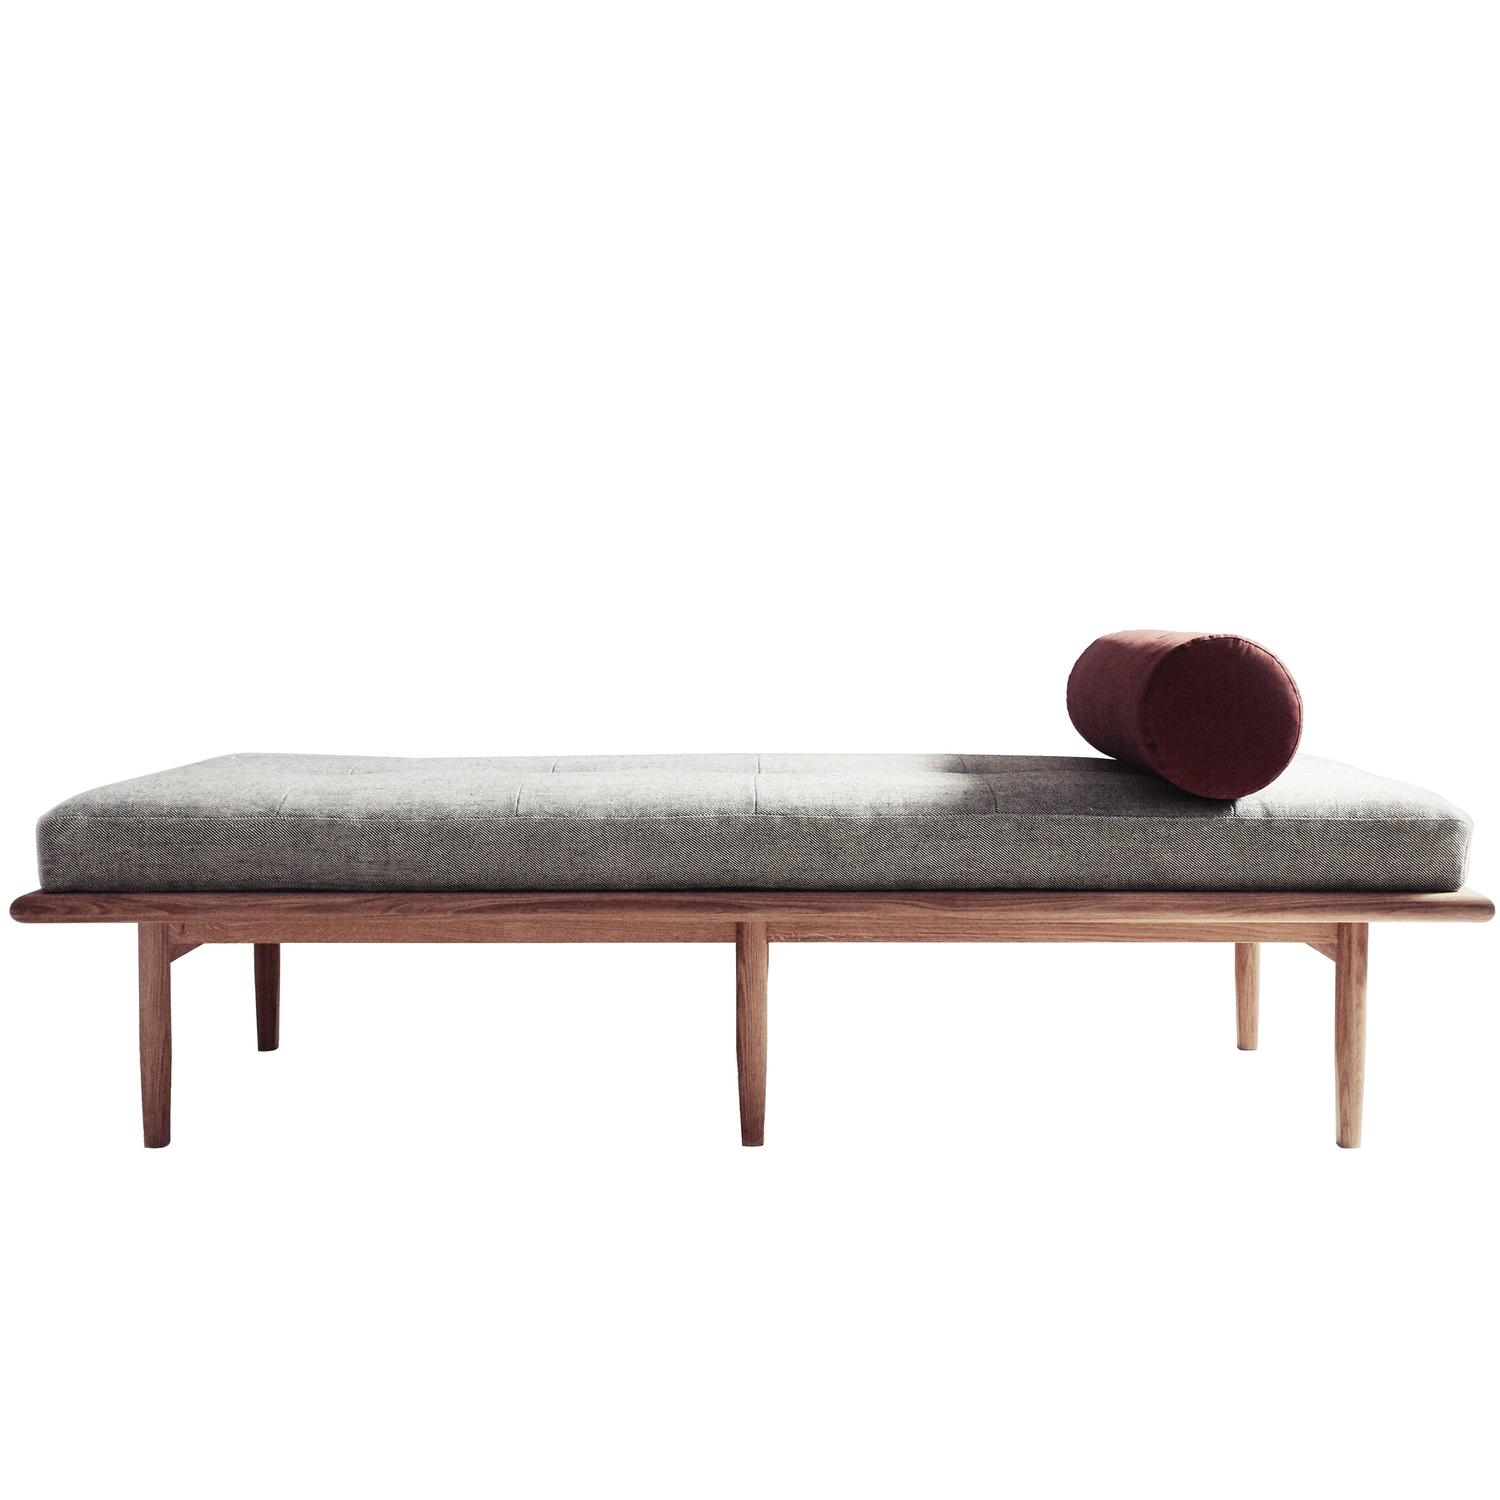 sylva daybed in wovenlinen and rust moleskin and white oak for sale at 1stdibs